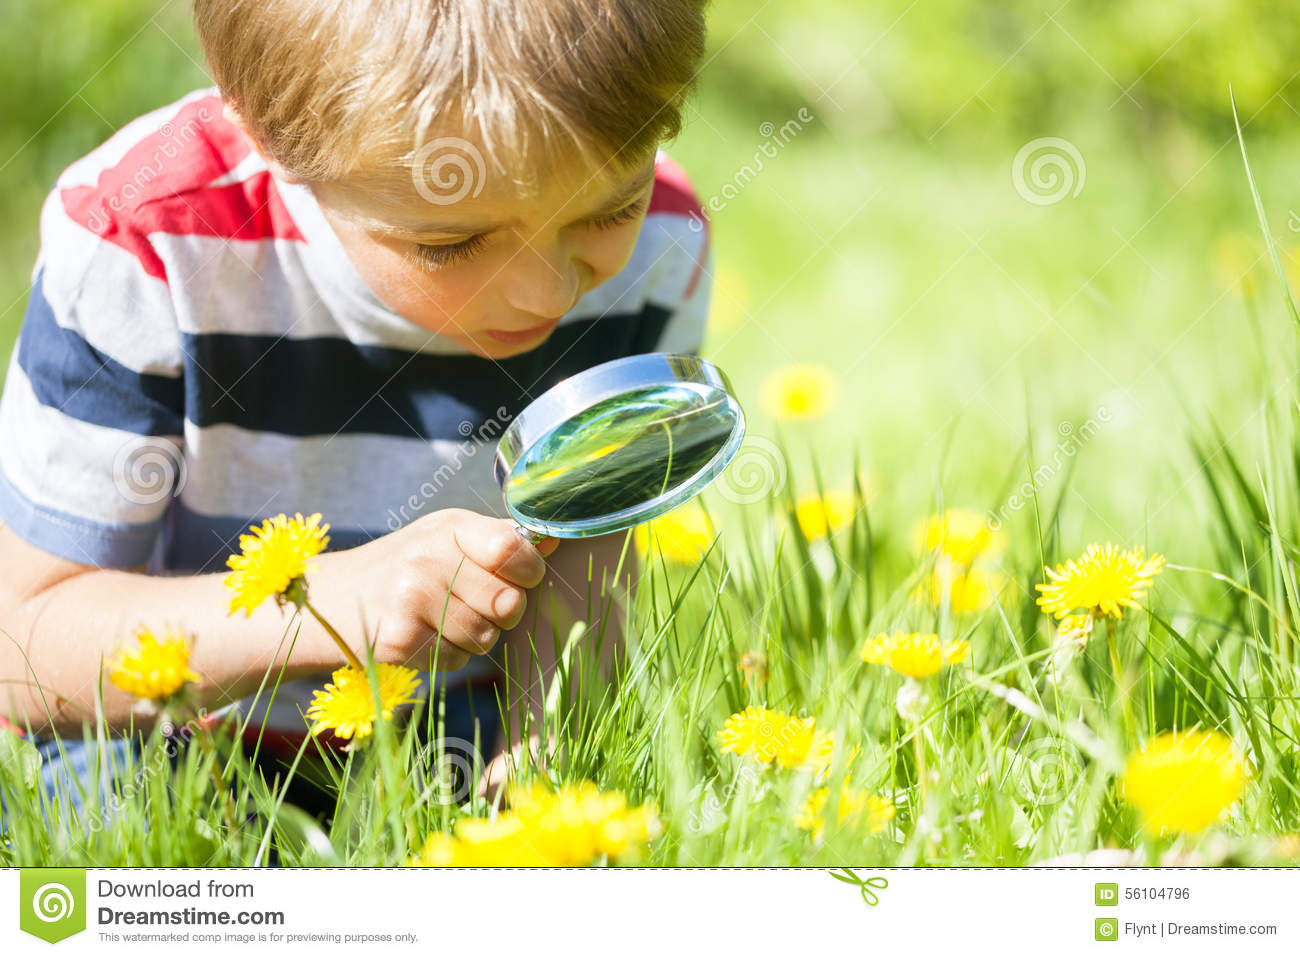 exploring early childhood children and And how can we implement these concepts into early childhood education  you are engaging children in stem  and there is nothing more relevant than being outside and exploring the world we live in.